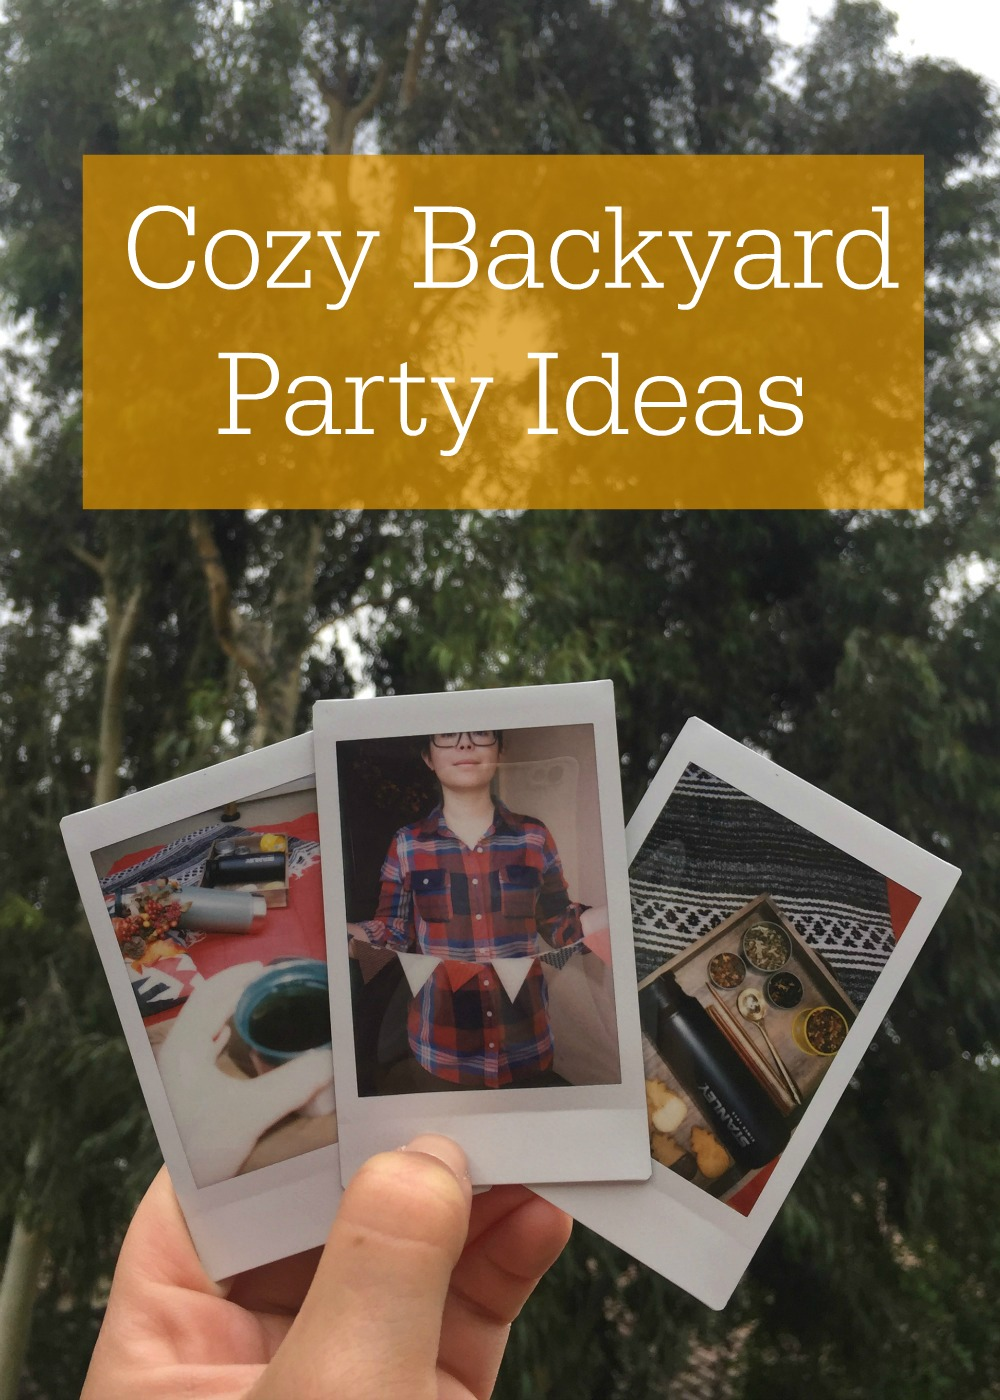 Cozy Backyard Party Ideas with Stanley PMI - Campfire Chic